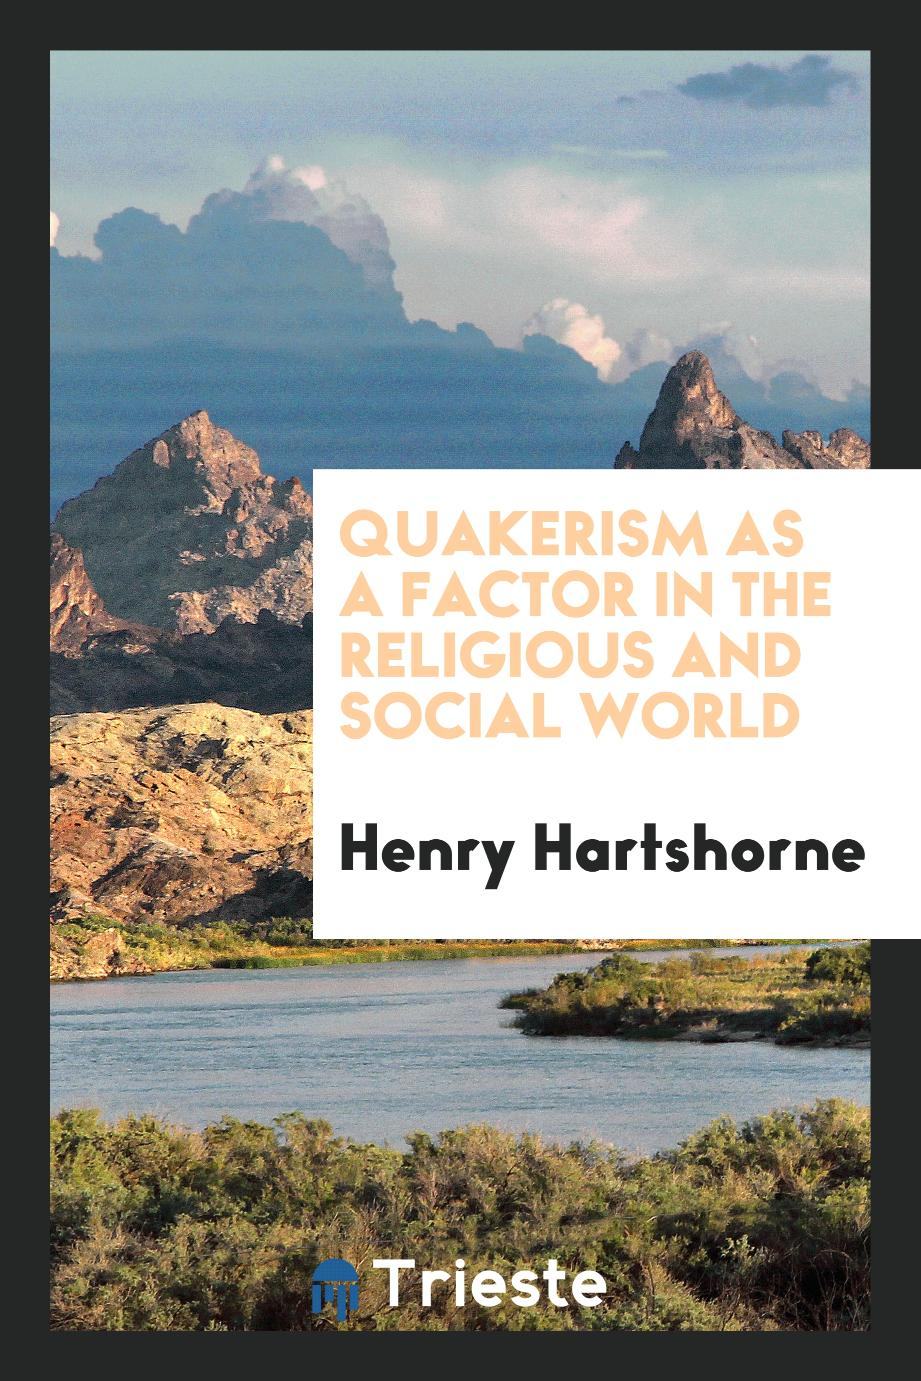 Quakerism as a Factor in the Religious and Social World